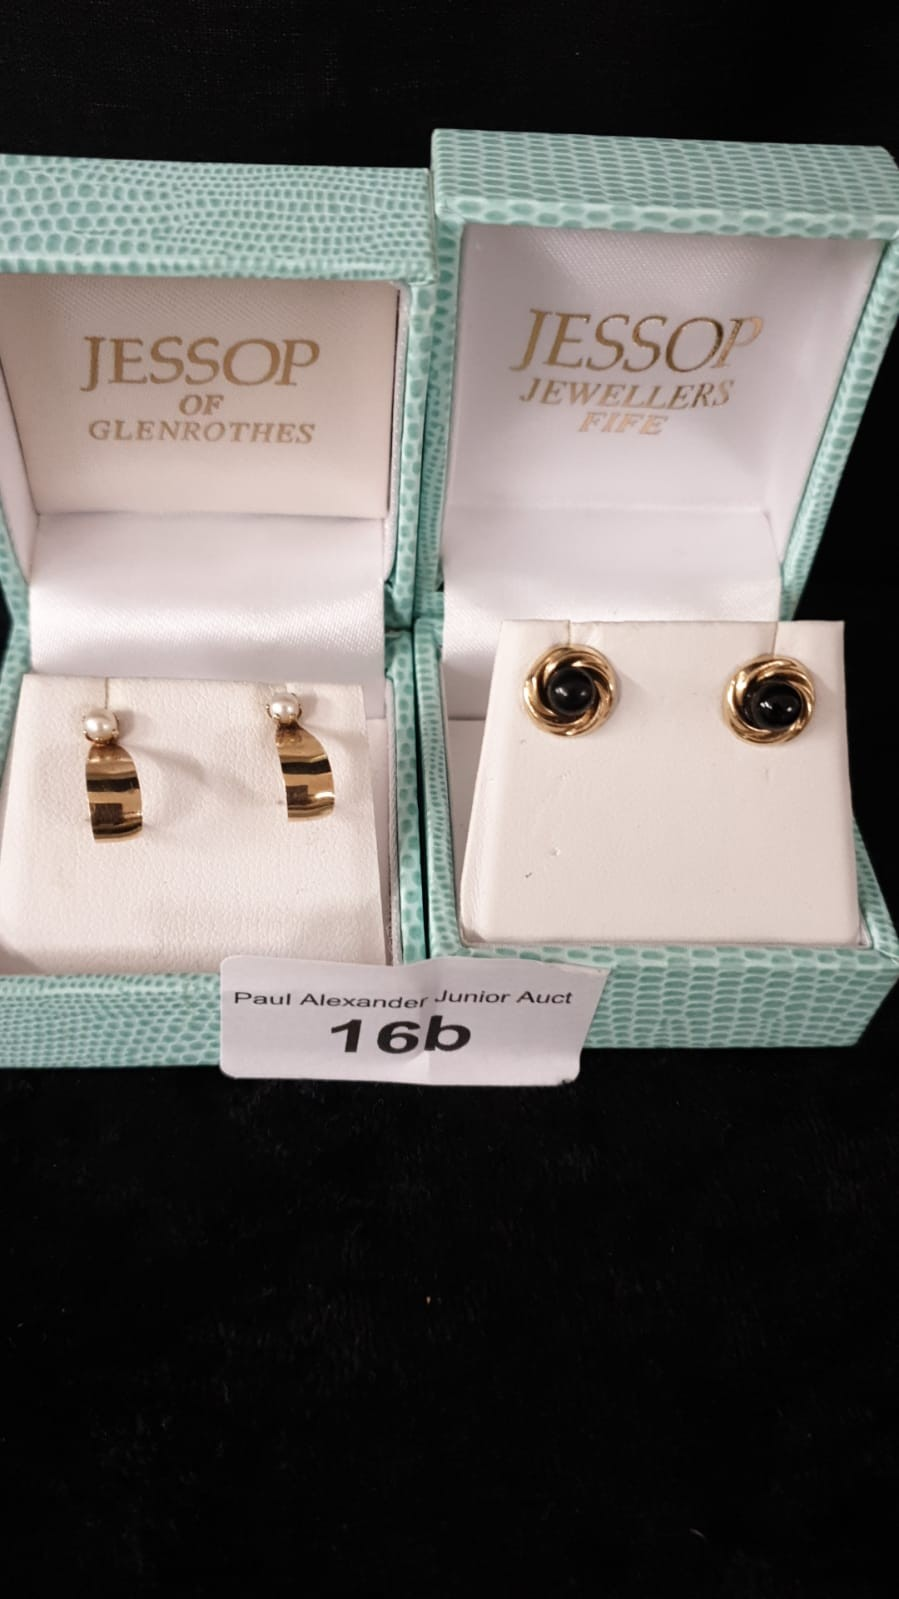 2 Pairs of 9ct gold earrings from jessops of glenrothes.